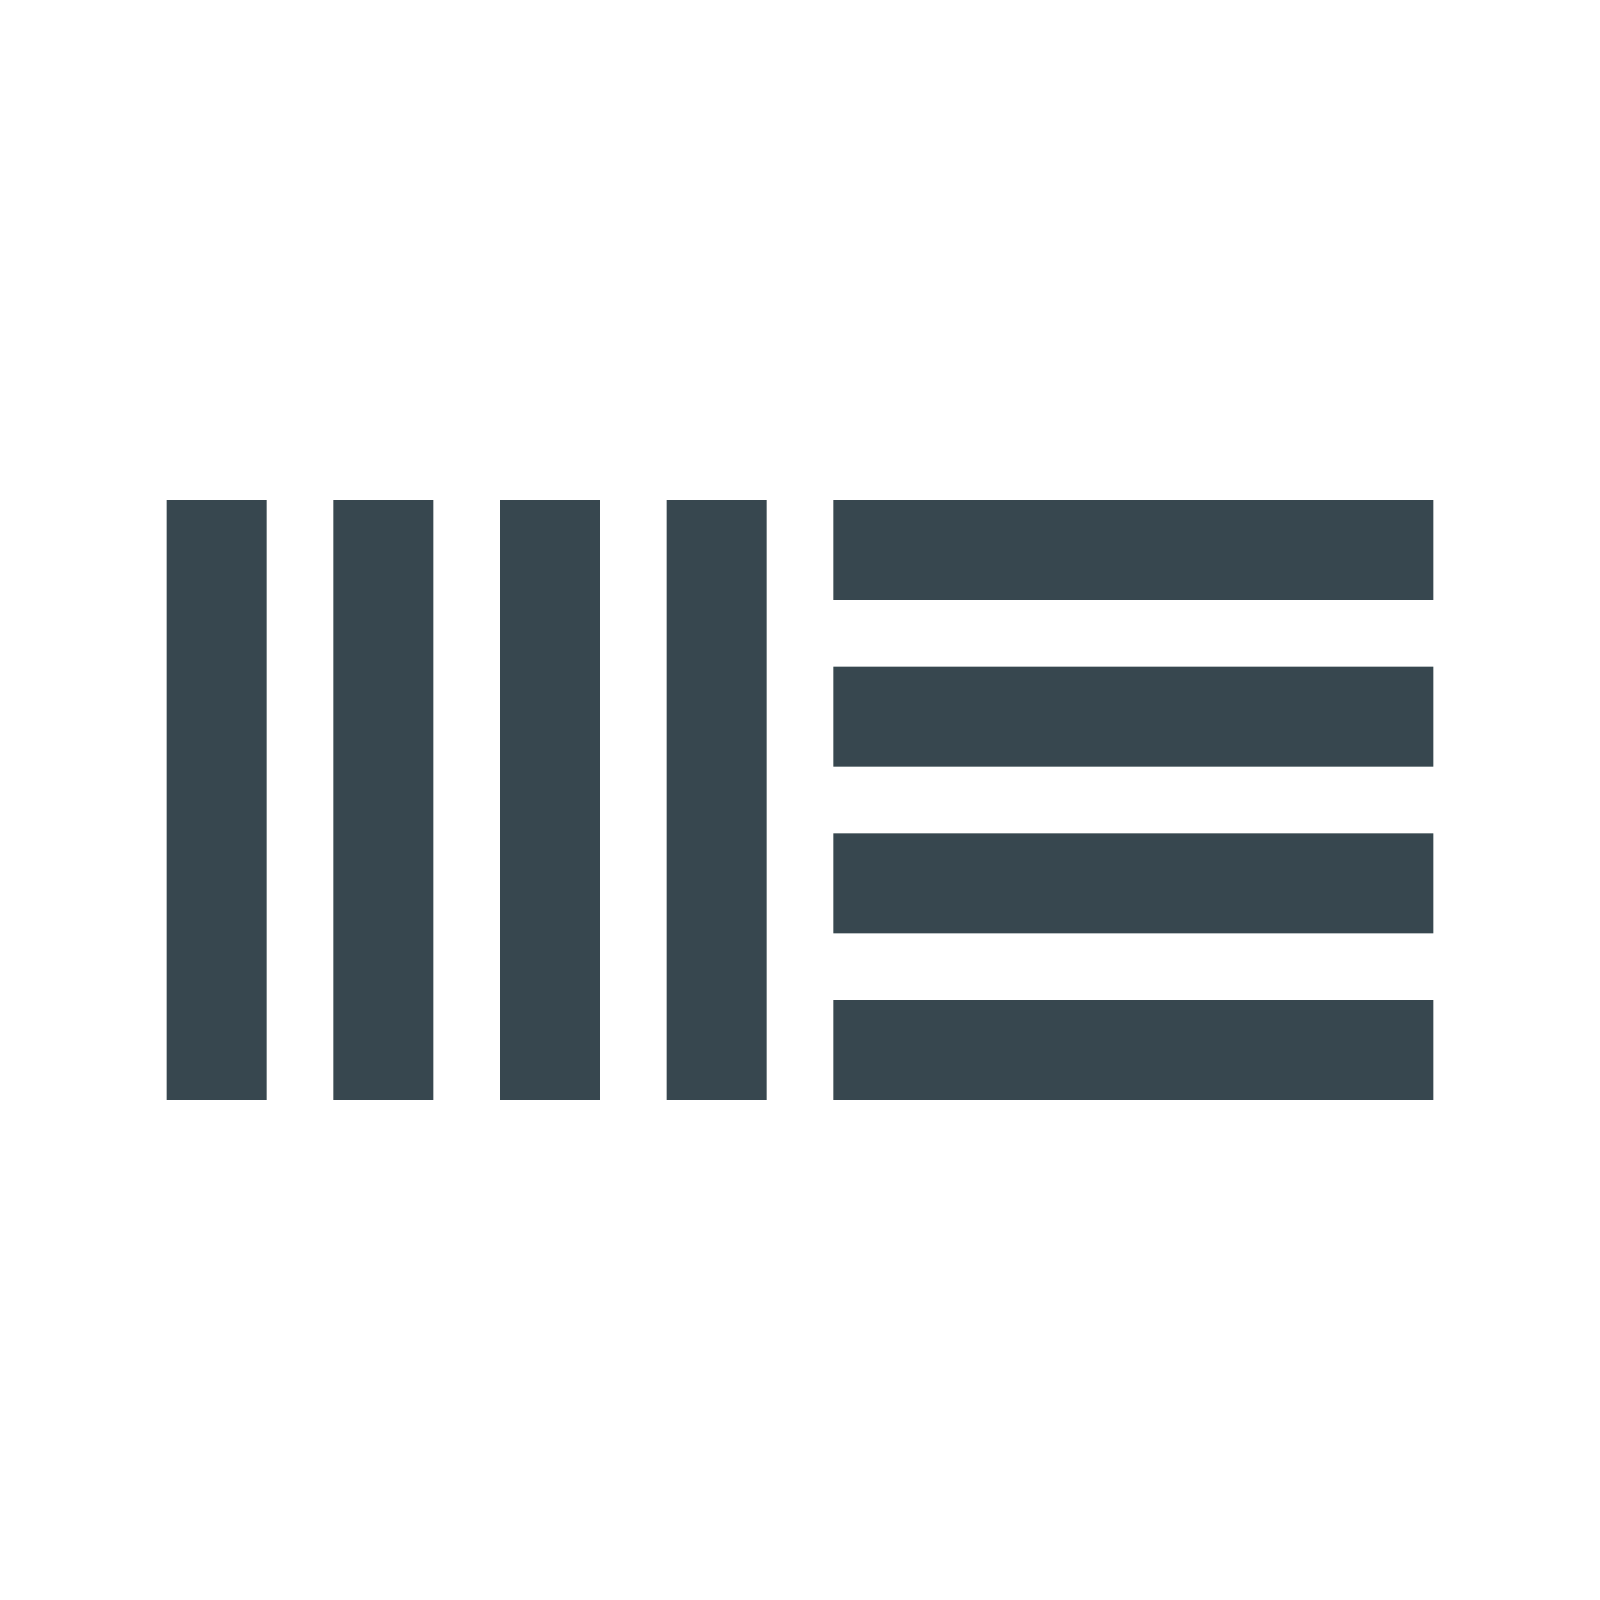 Here is the Ableton Logo. It looks like the Ableton Logo because.